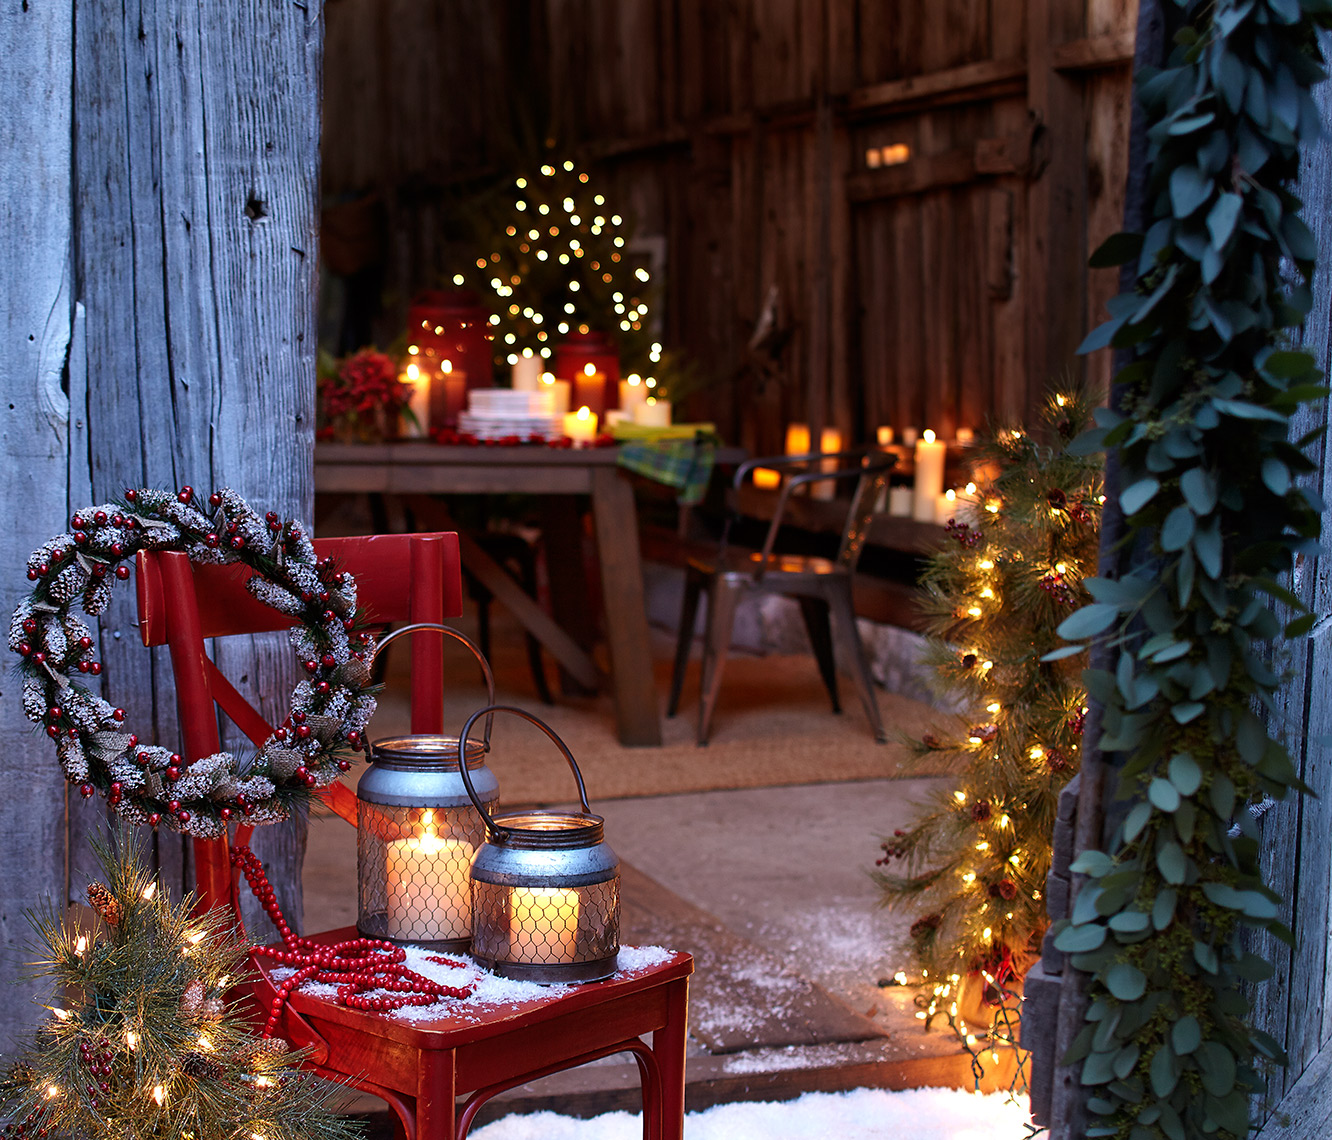 Christmas Setting in a barn